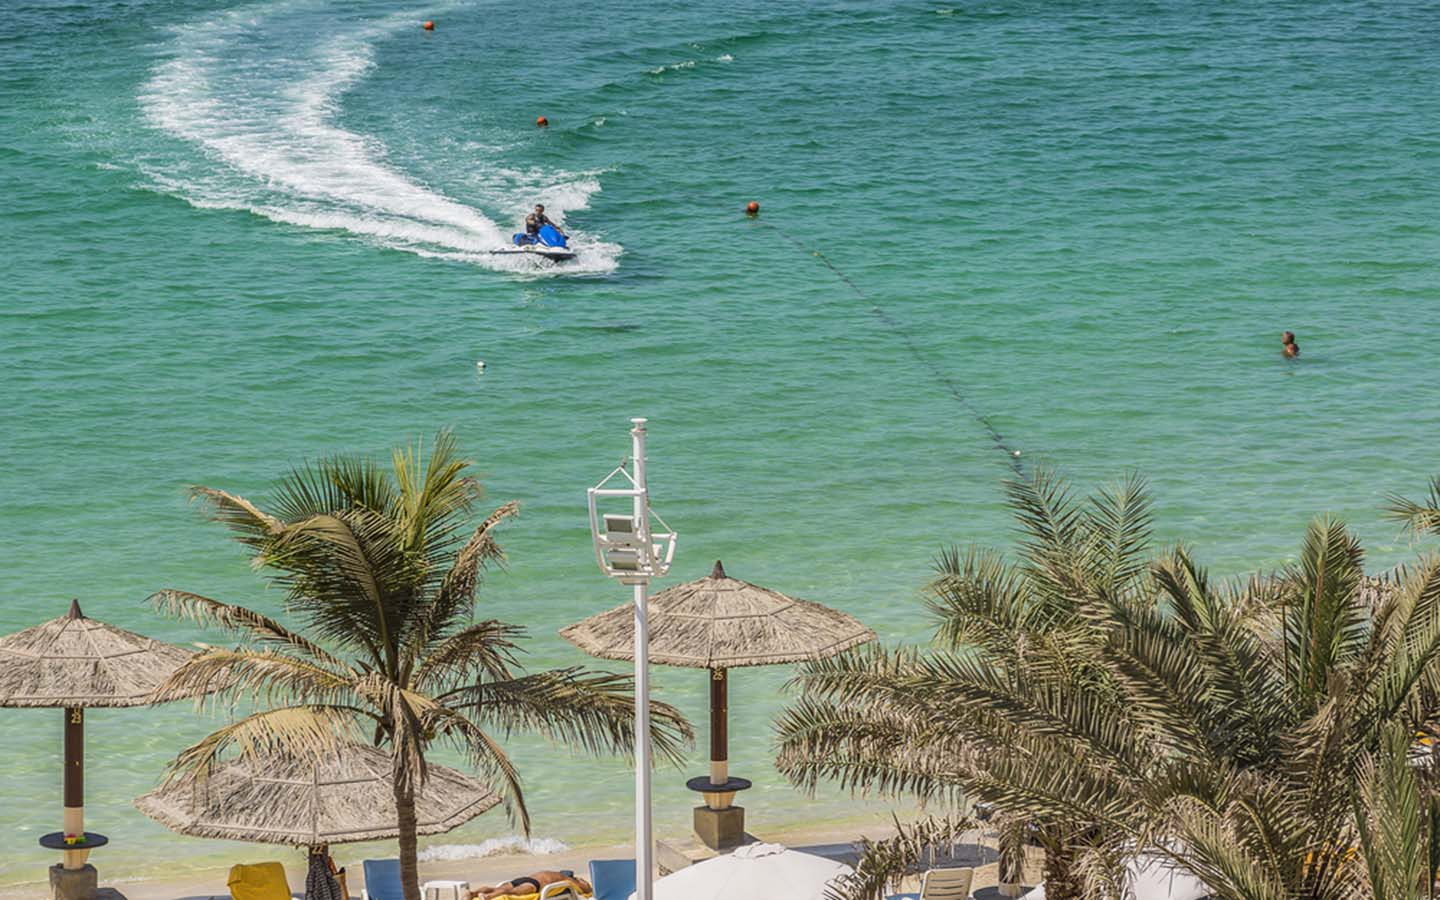 a person jet-skiing across Al Khan Beach